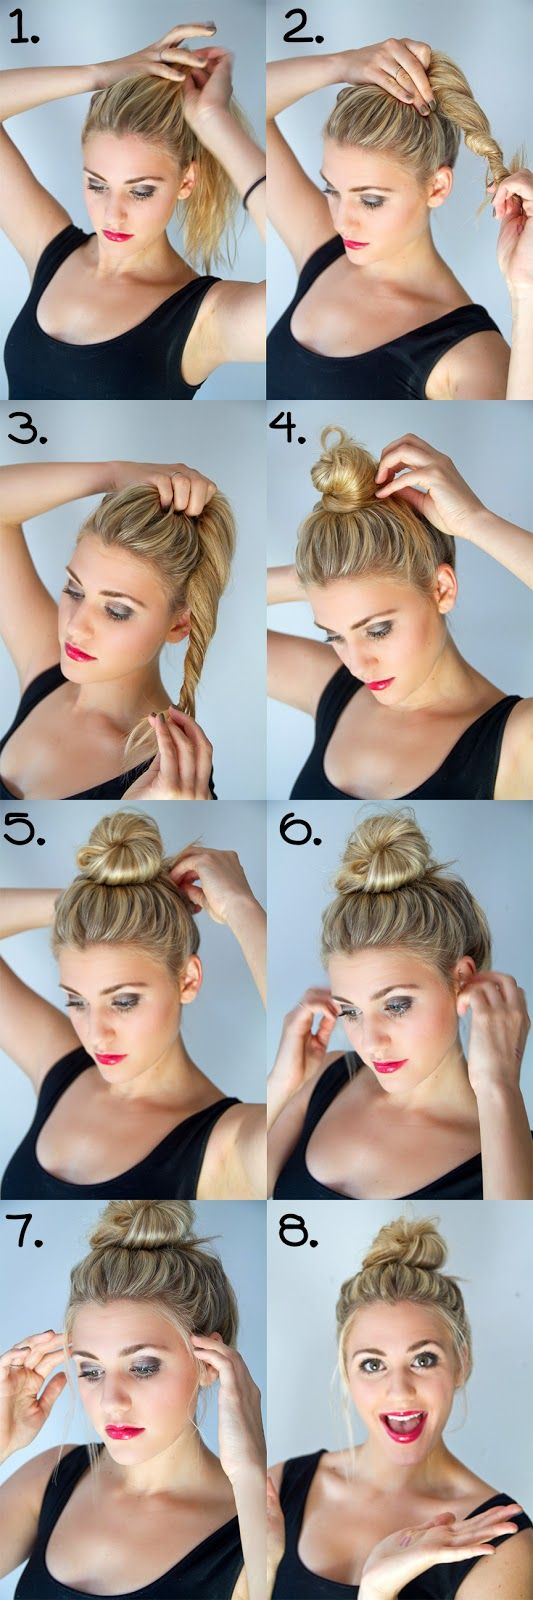 25 Best Ideas About Top Knot Hair On Pinterest Top Knot Cool